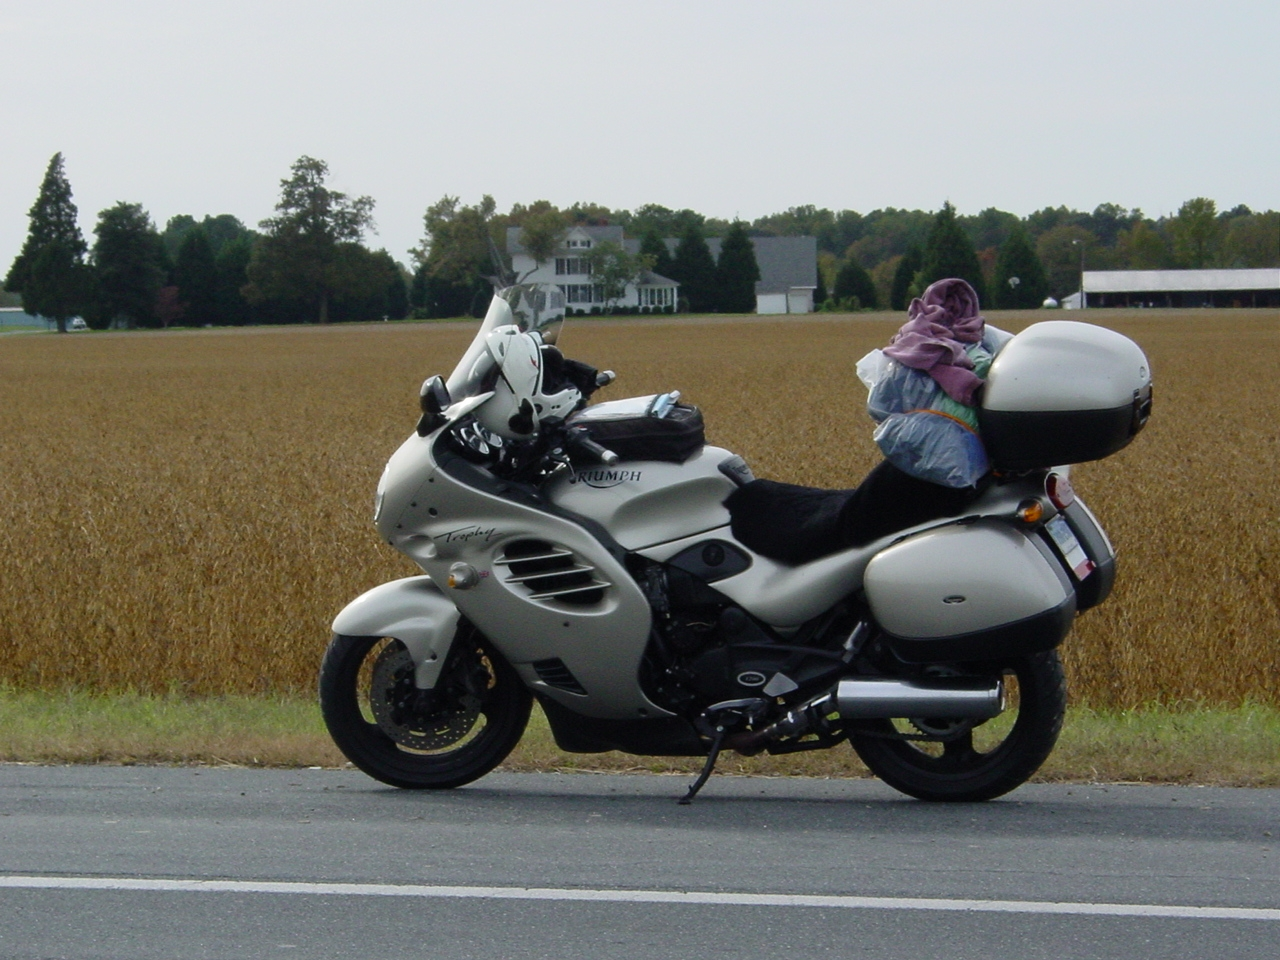 Click image for larger version  Name:bike field.JPG Views:102 Size:791.7 KB ID:86593